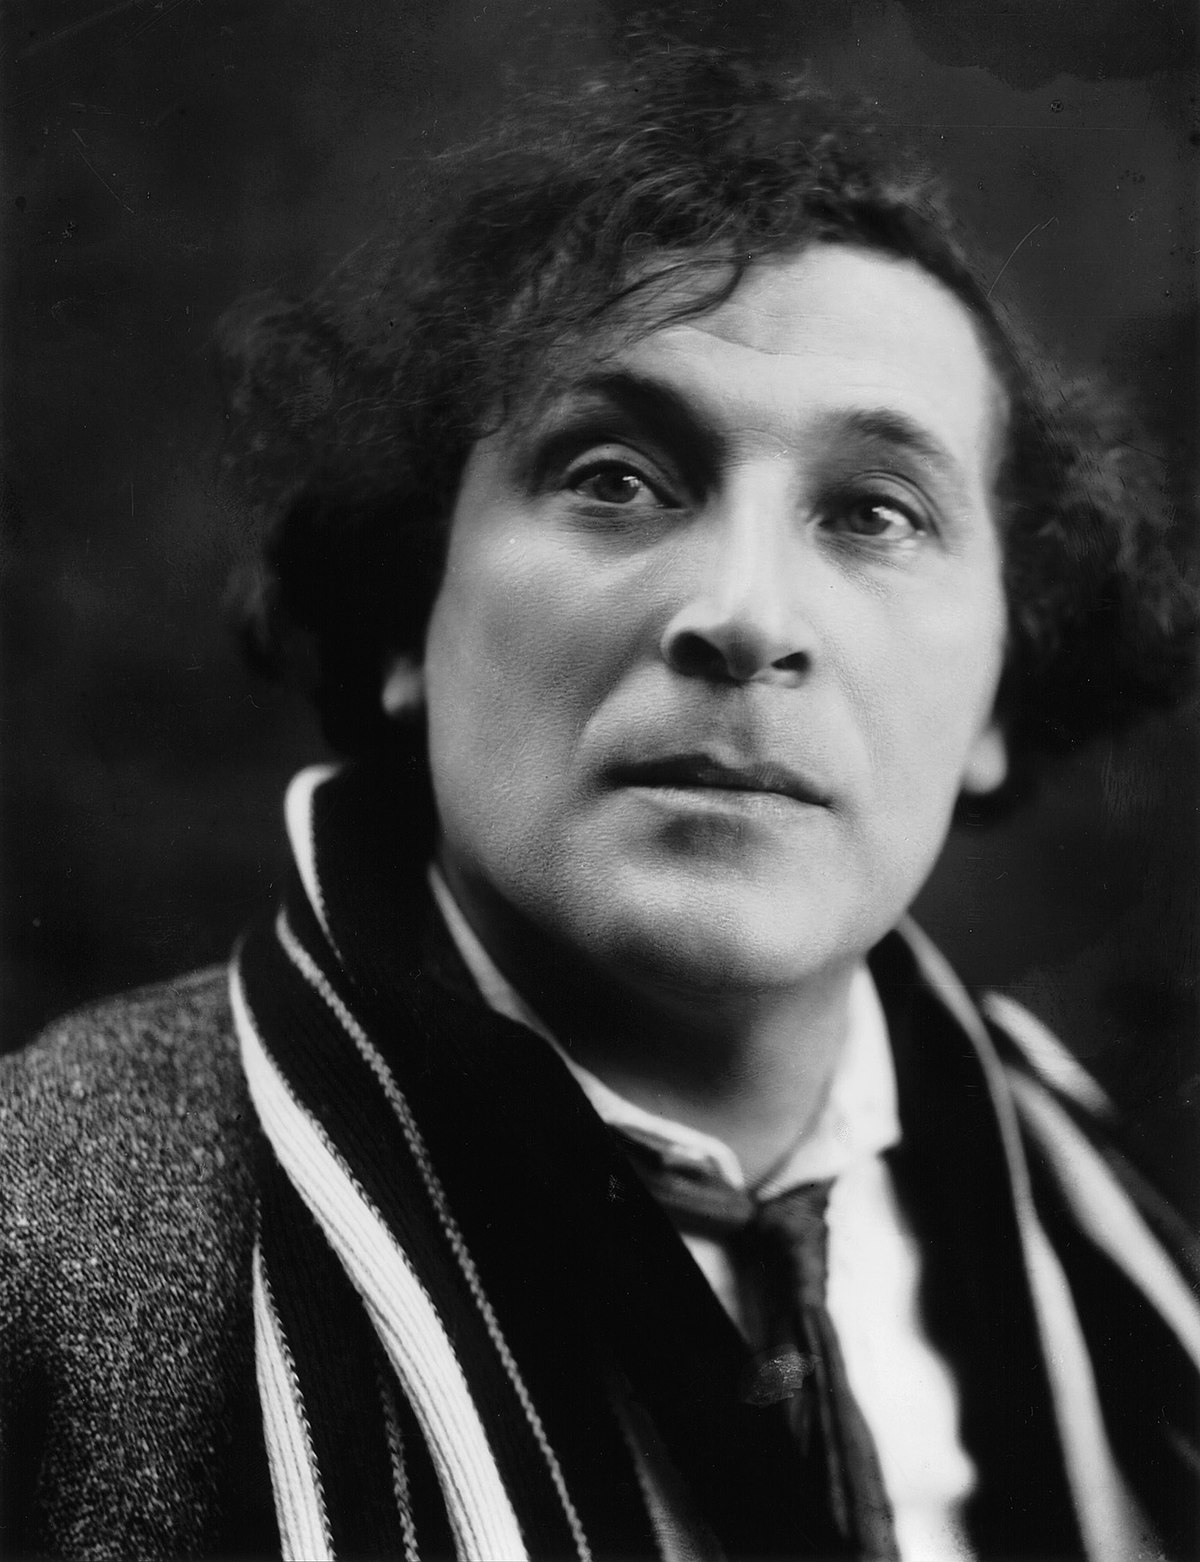 marc chagall rouen : marc chagall in english :  marc chagall 1956 en 2020/2021